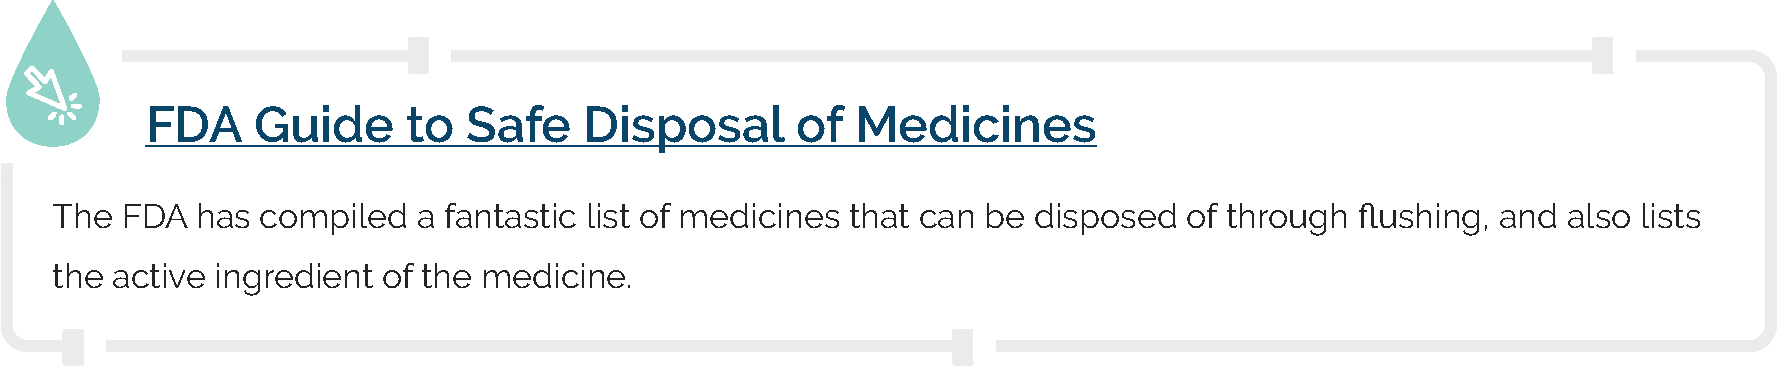 FDA Guide to Safe Disposal of Medicines